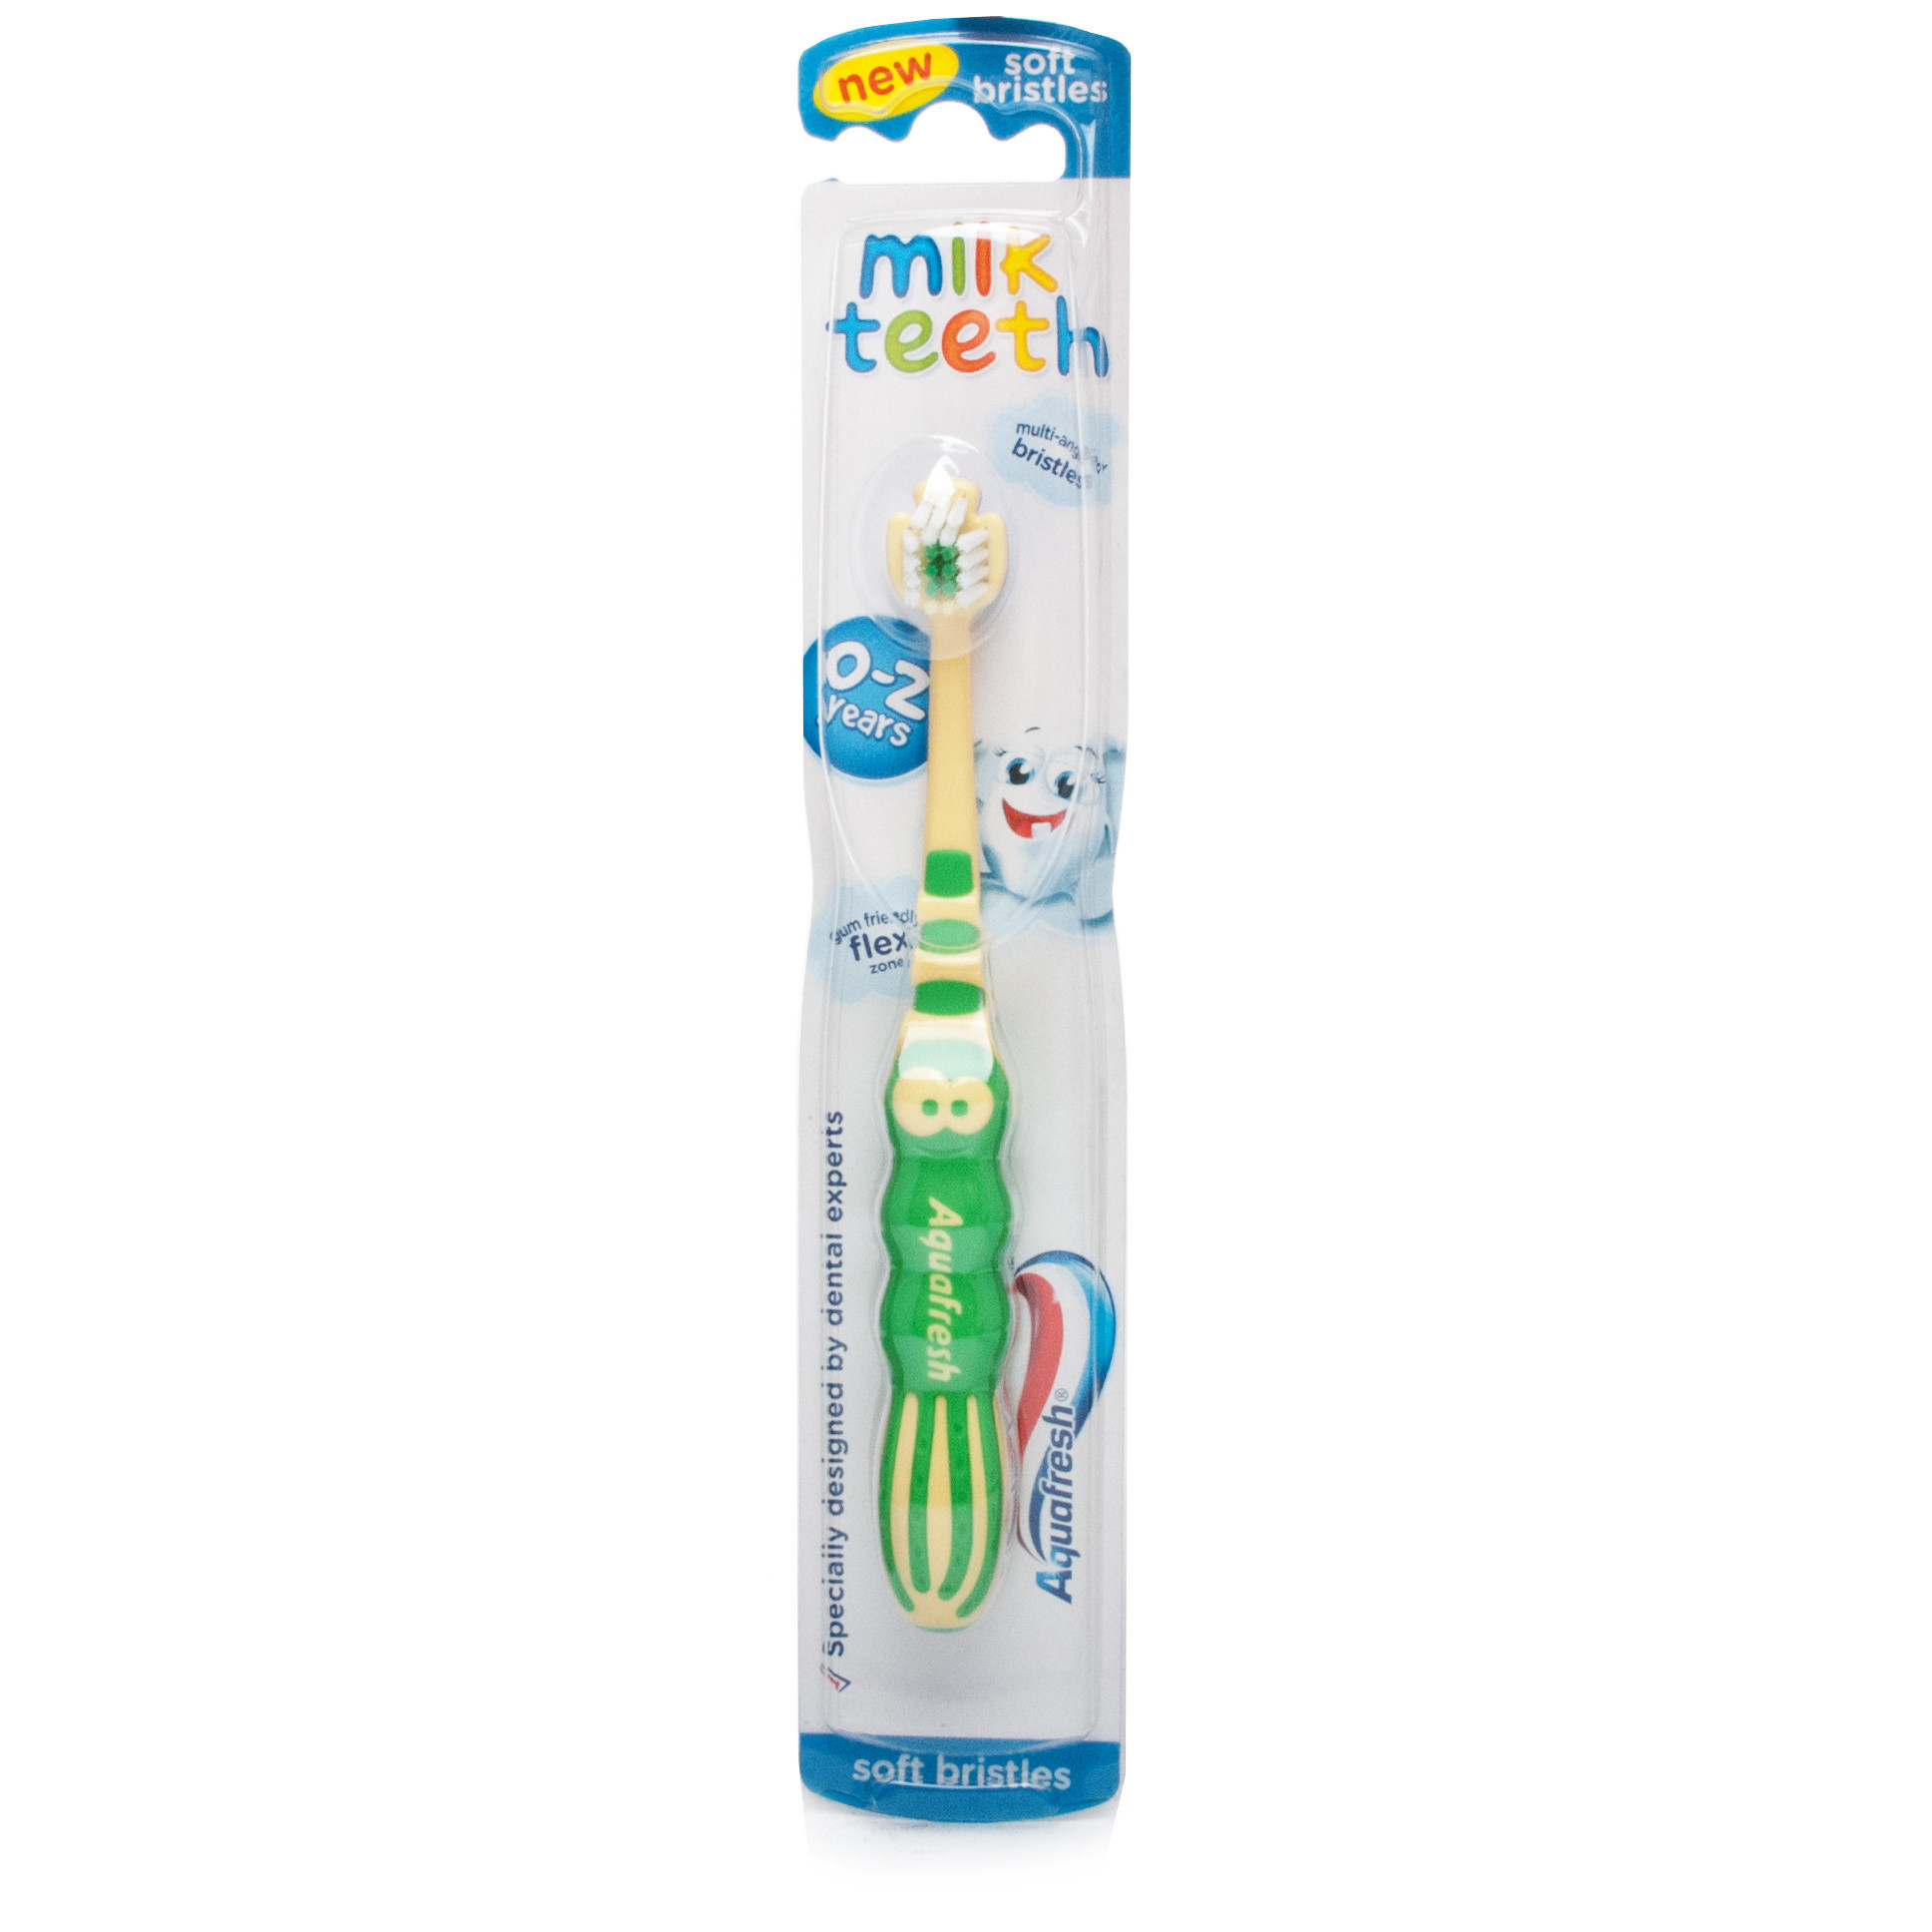 Aquafresh Milk Teeth Toothbrush 0-2 Years